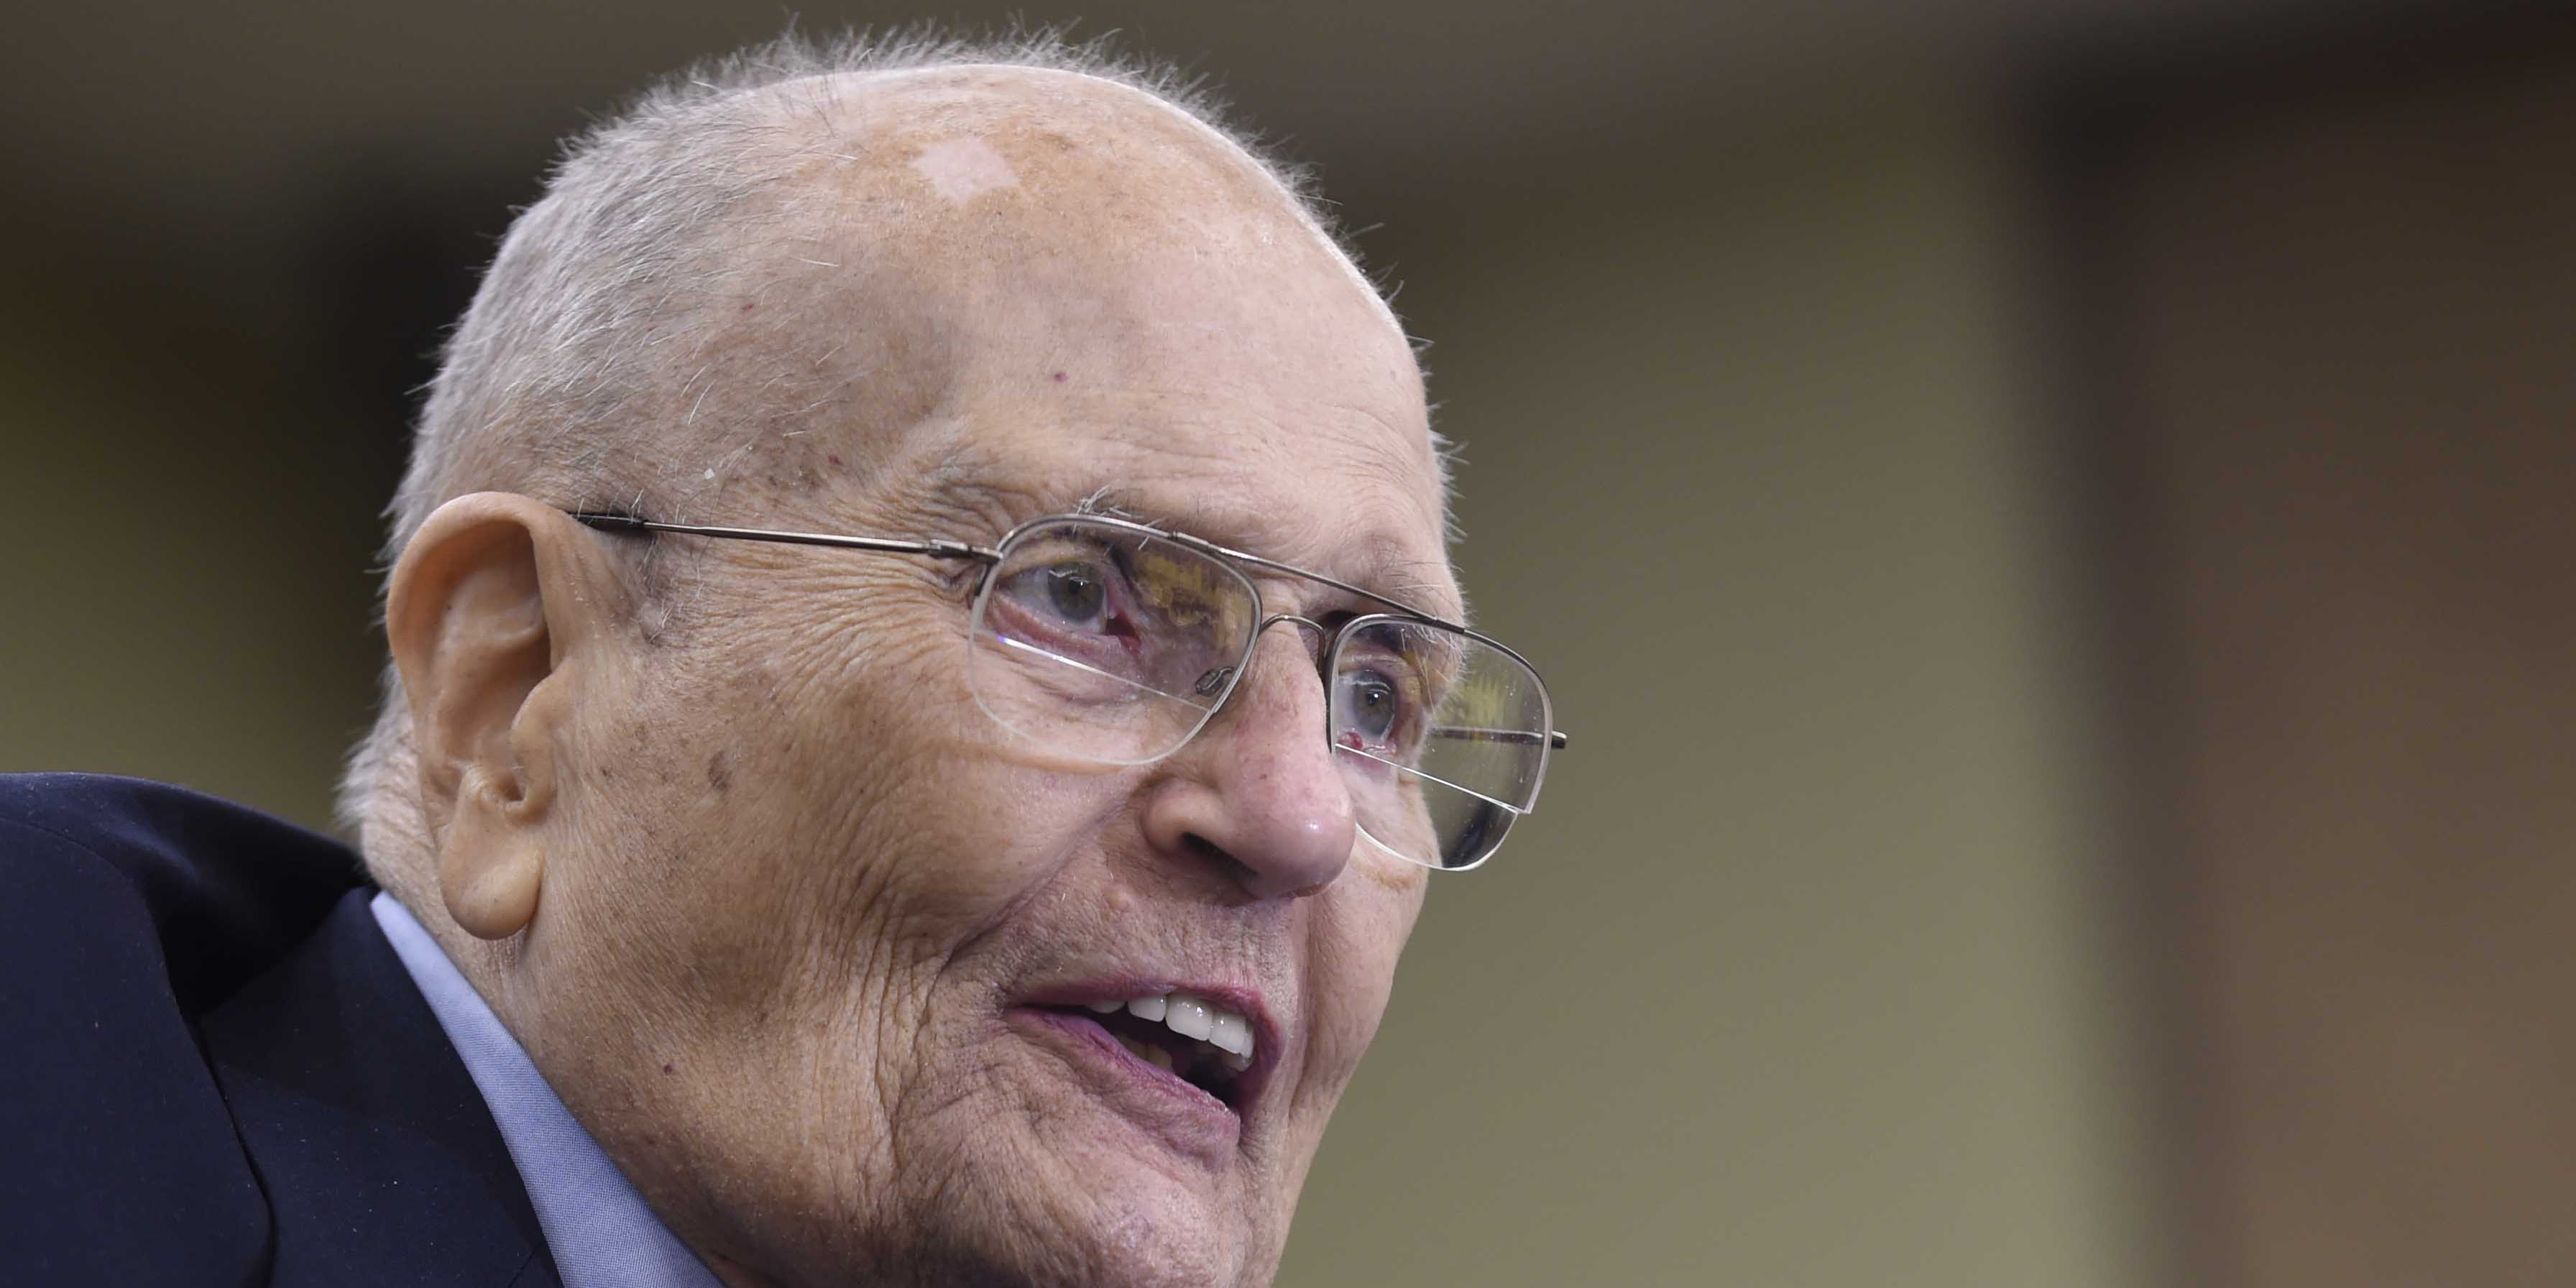 AP Source: Former Michigan Rep. John Dingell in hospice care